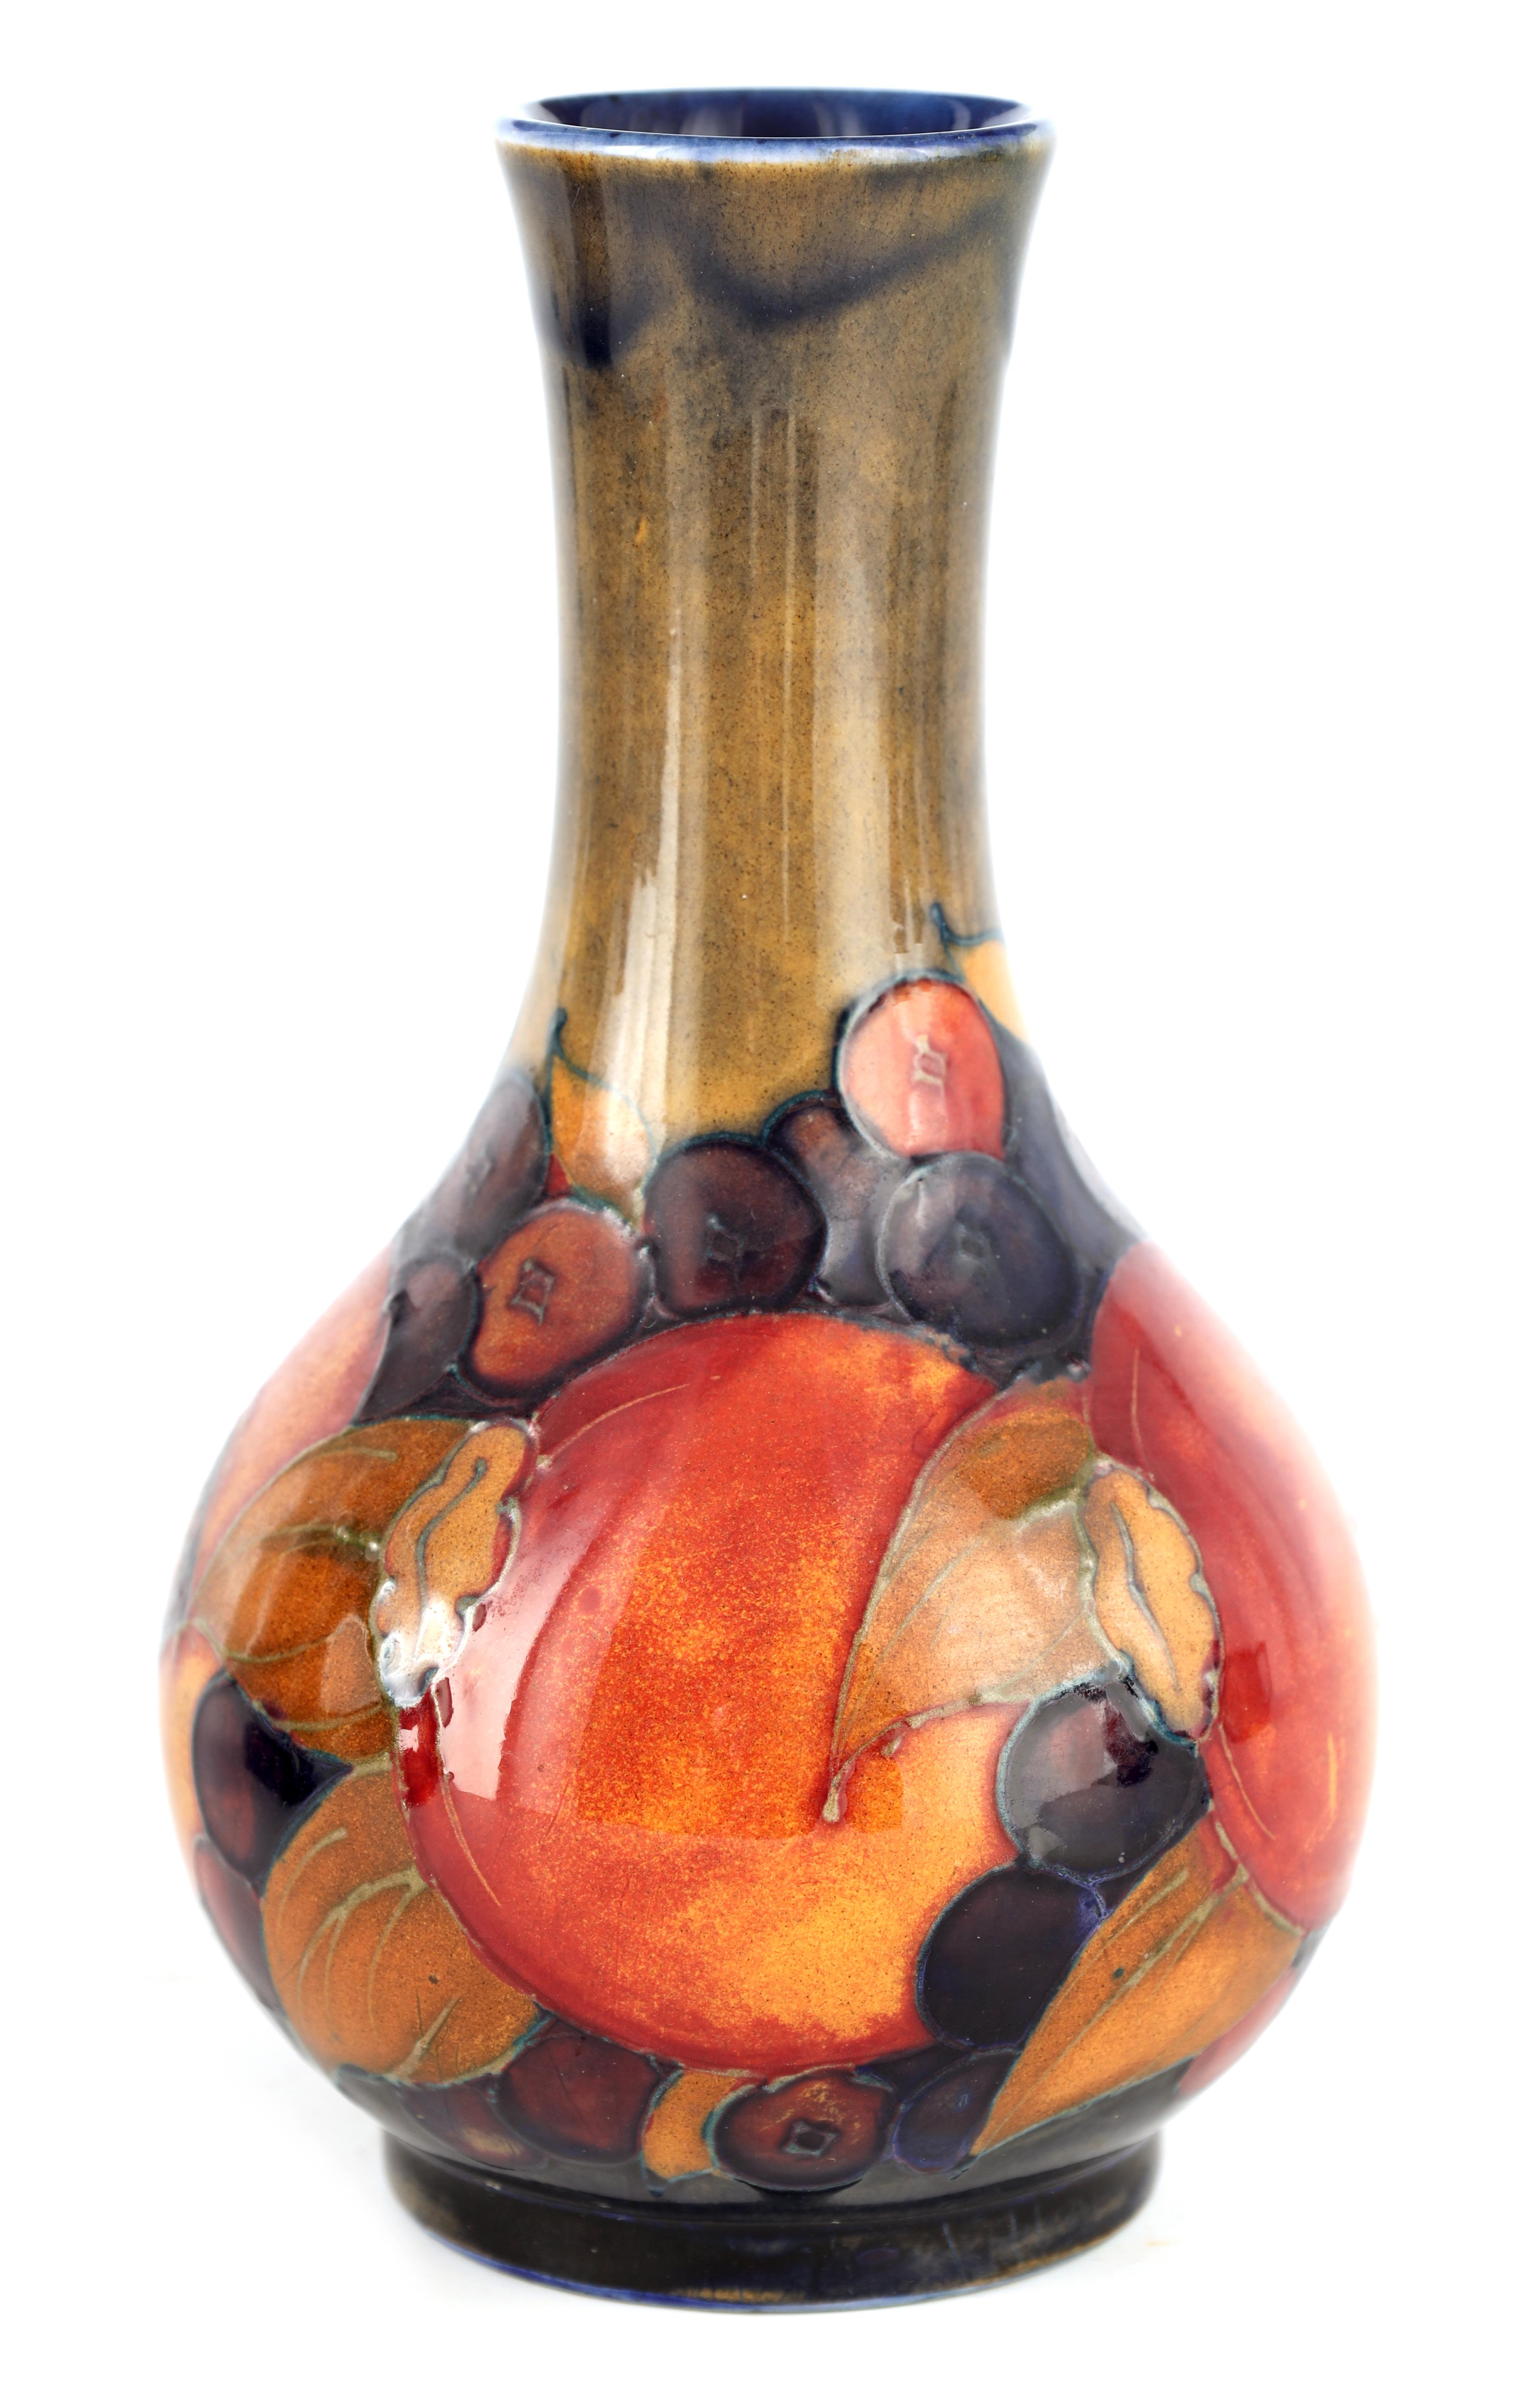 A 1930S/40S MOORCROFT BULBOUS VASE WITH SLENDER NECK tube lined and decorated in the Pomegranate